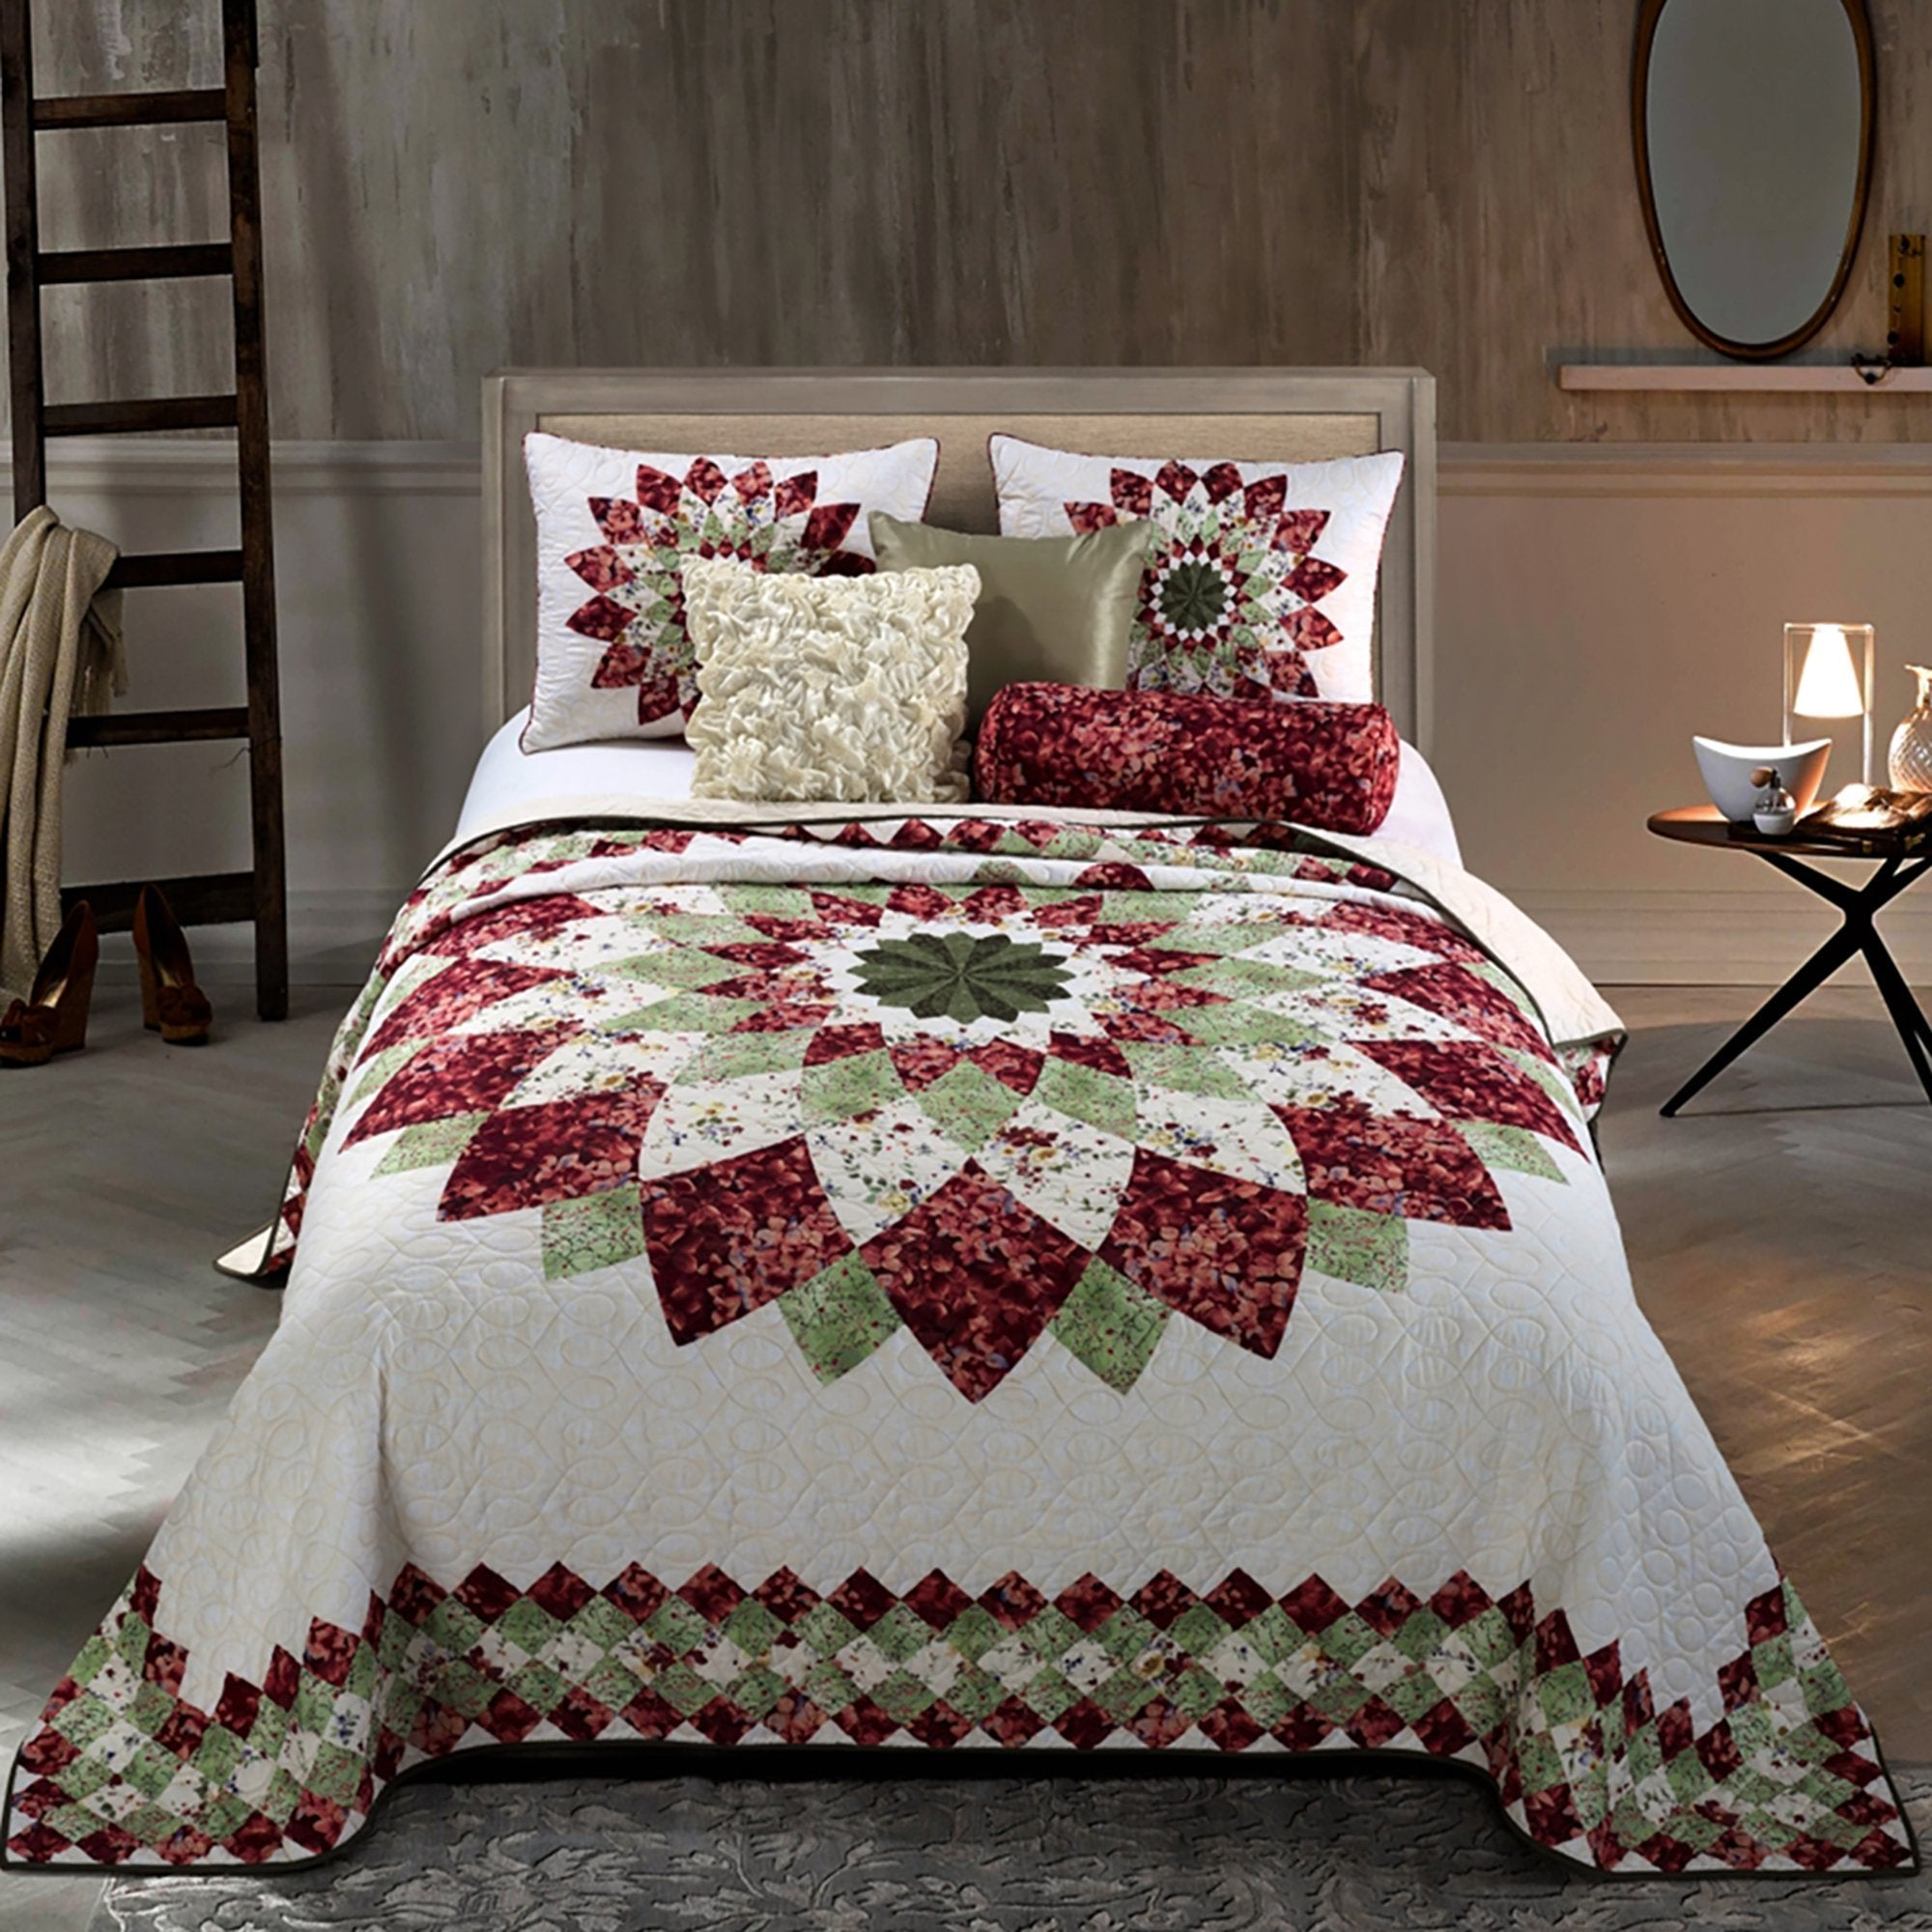 Springfield Dahlia Quilt [Luxury comforter Sets] [by Latest Bedding]